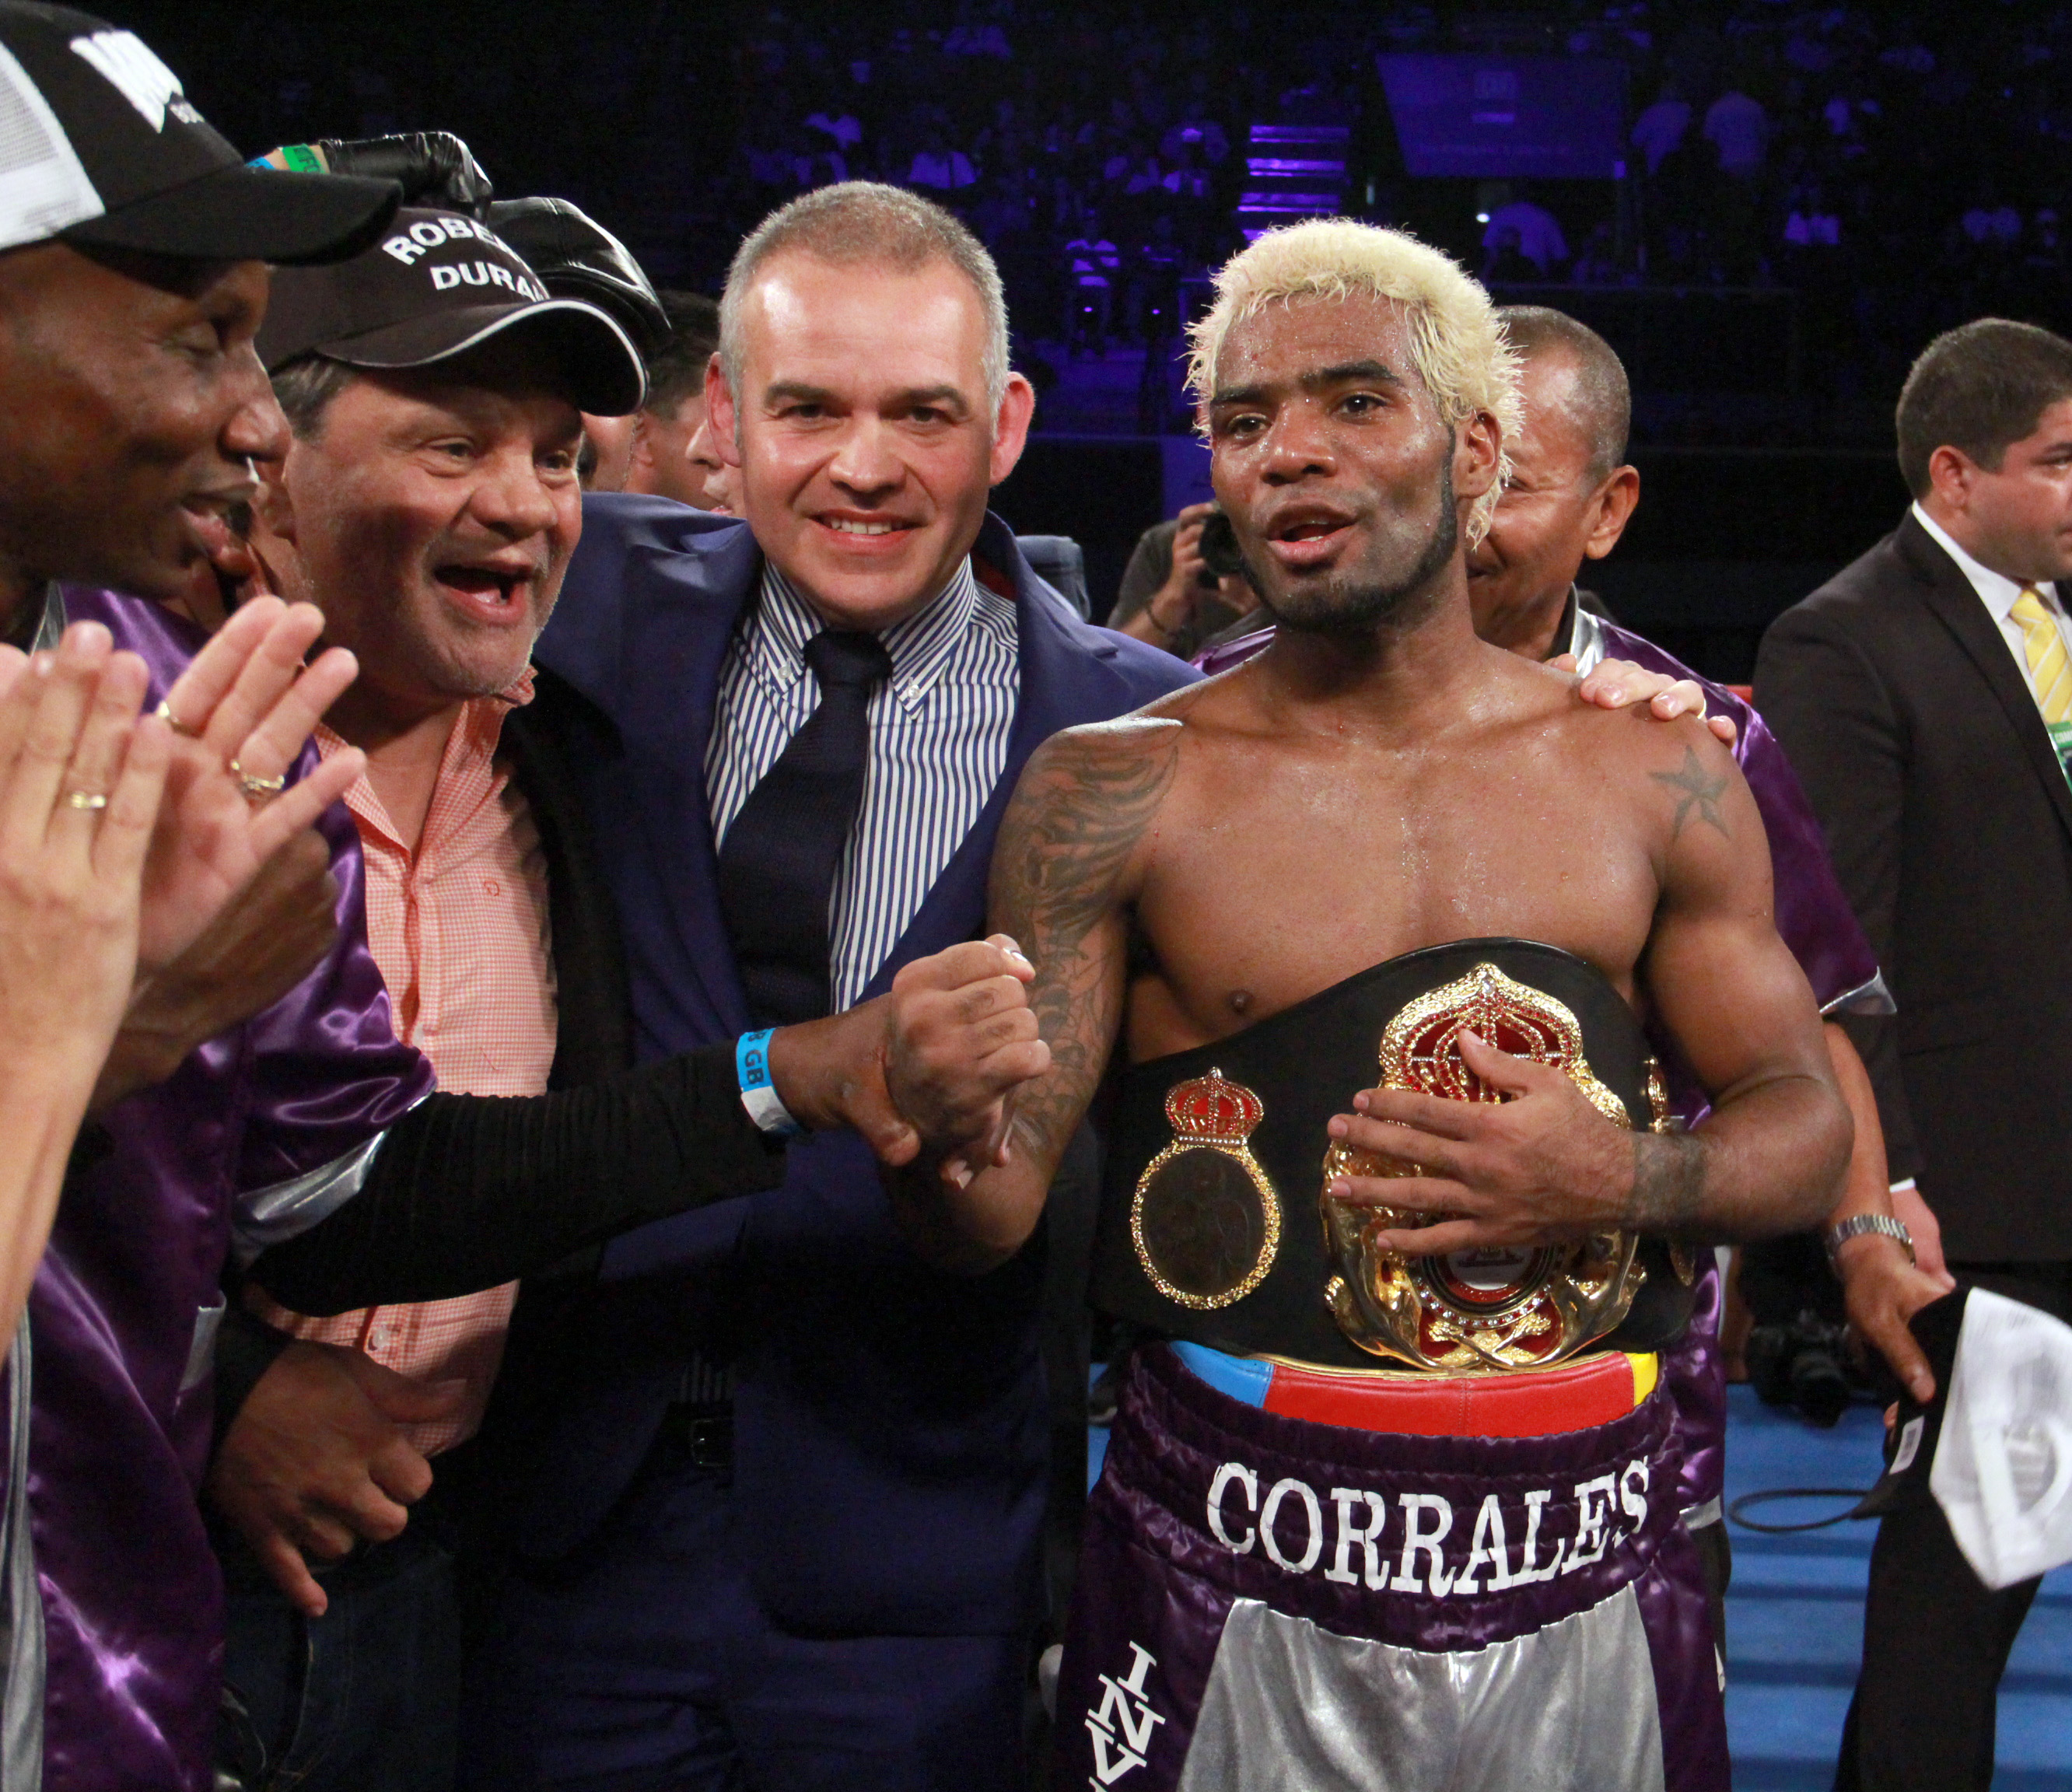 Corrales successfully defended his WBA title